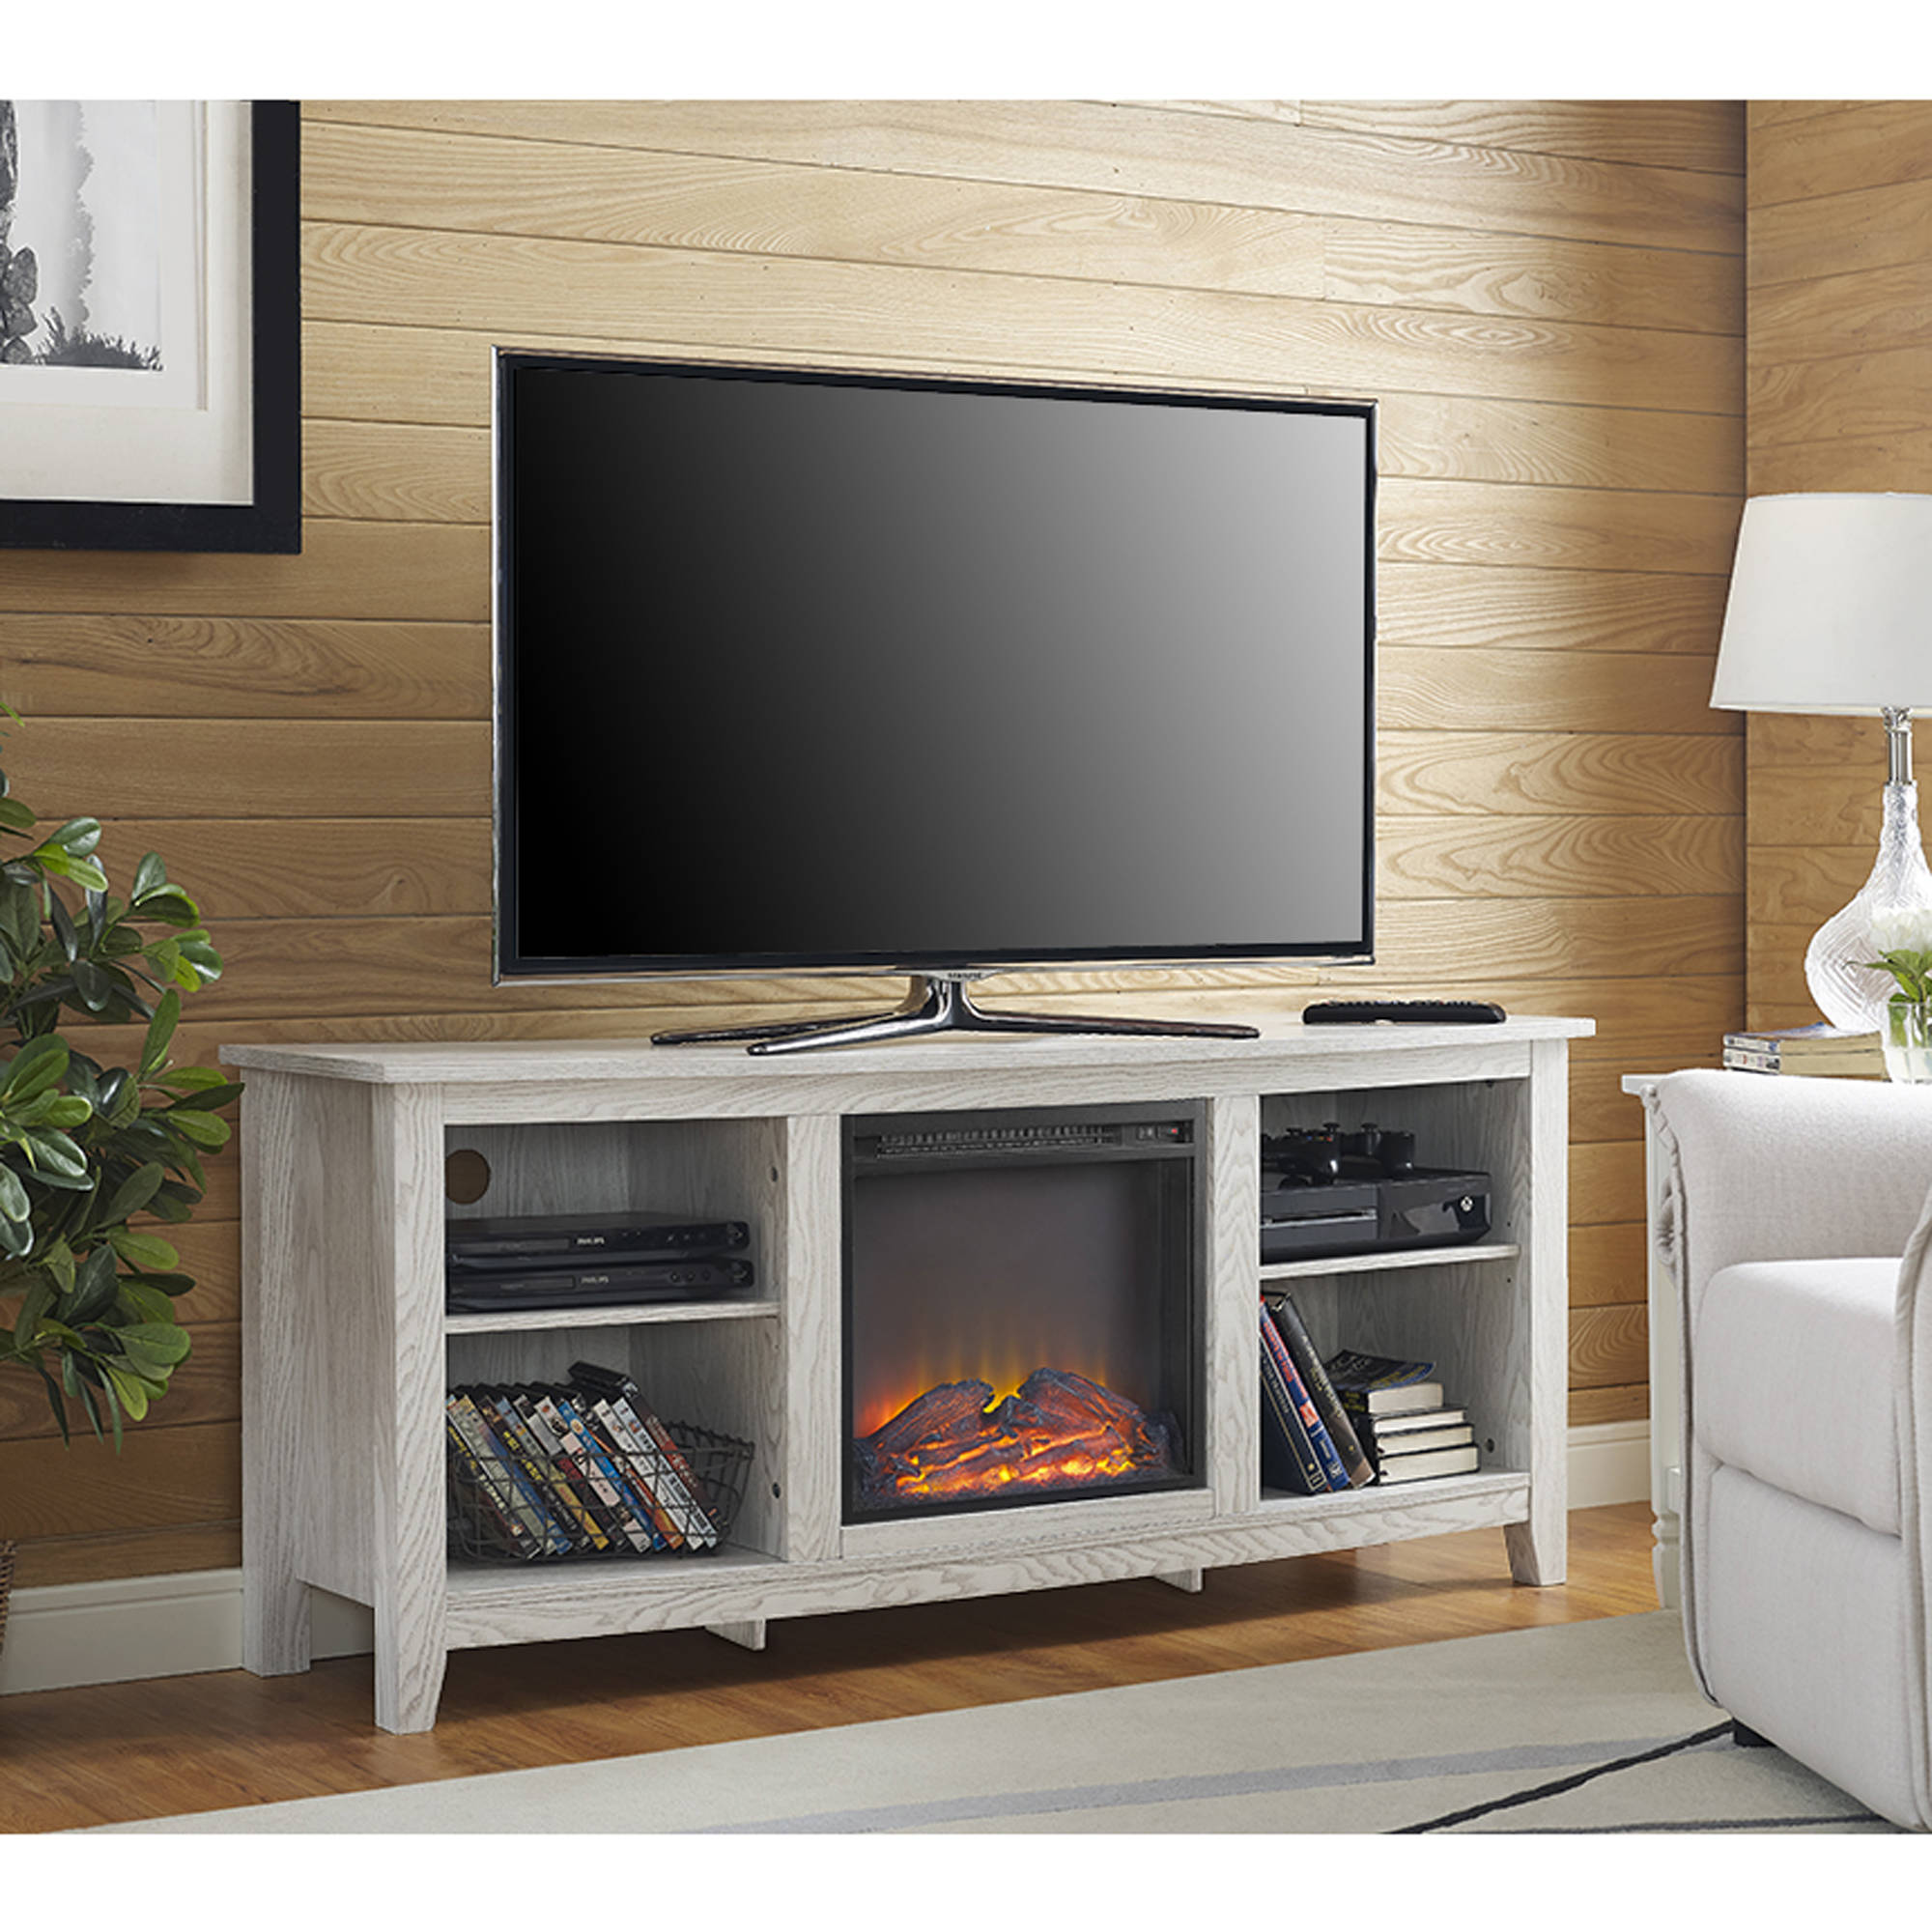 tv cheap fireplace wood ebay up tvs for stand whitewash electric to itm